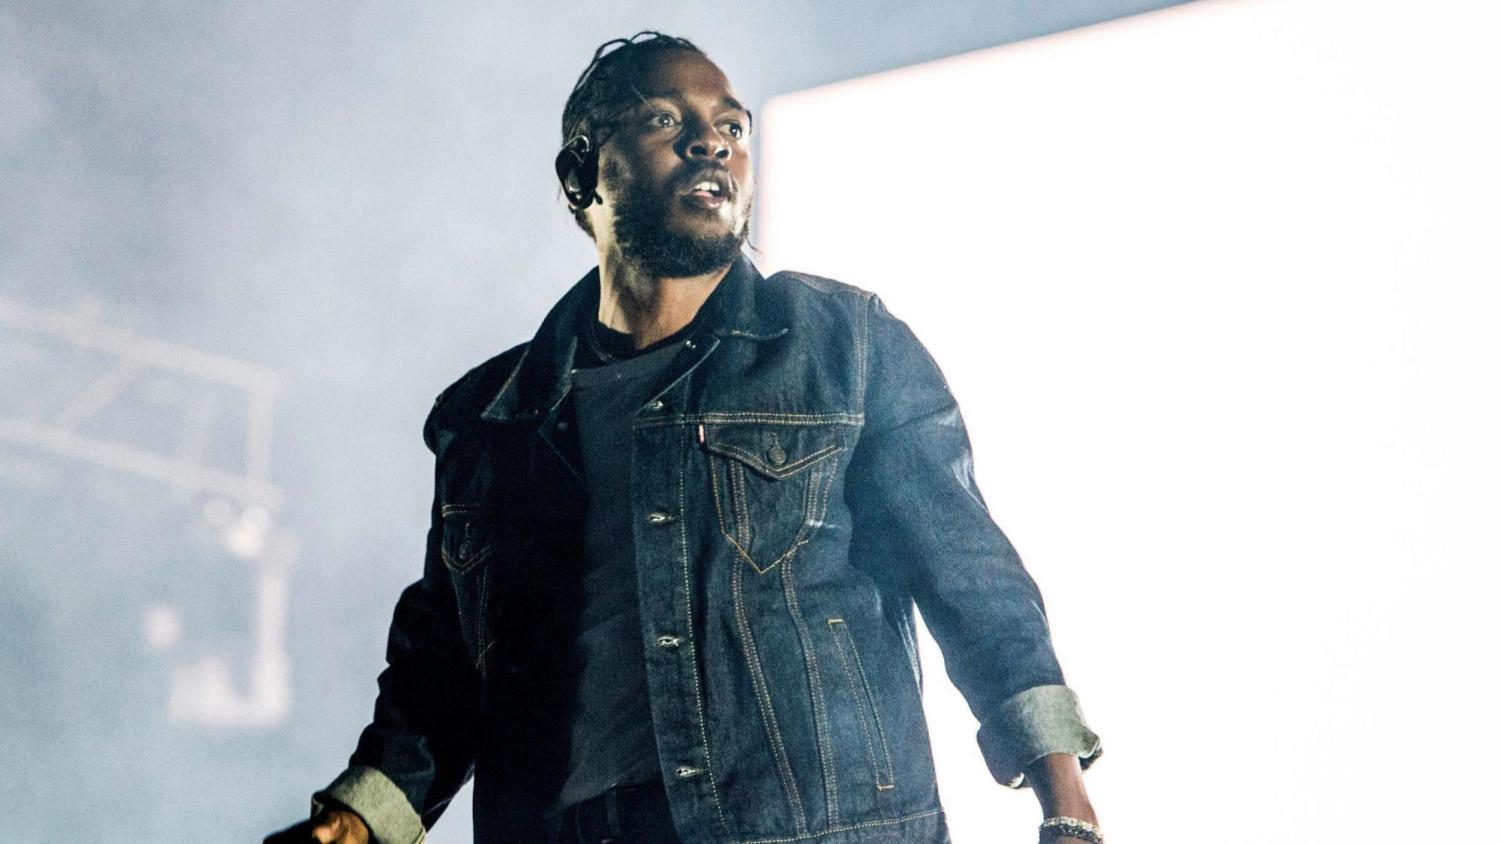 Kendrick Lamar's Pulitzer makes him the first nonclassical or jazz musician to win the prize.